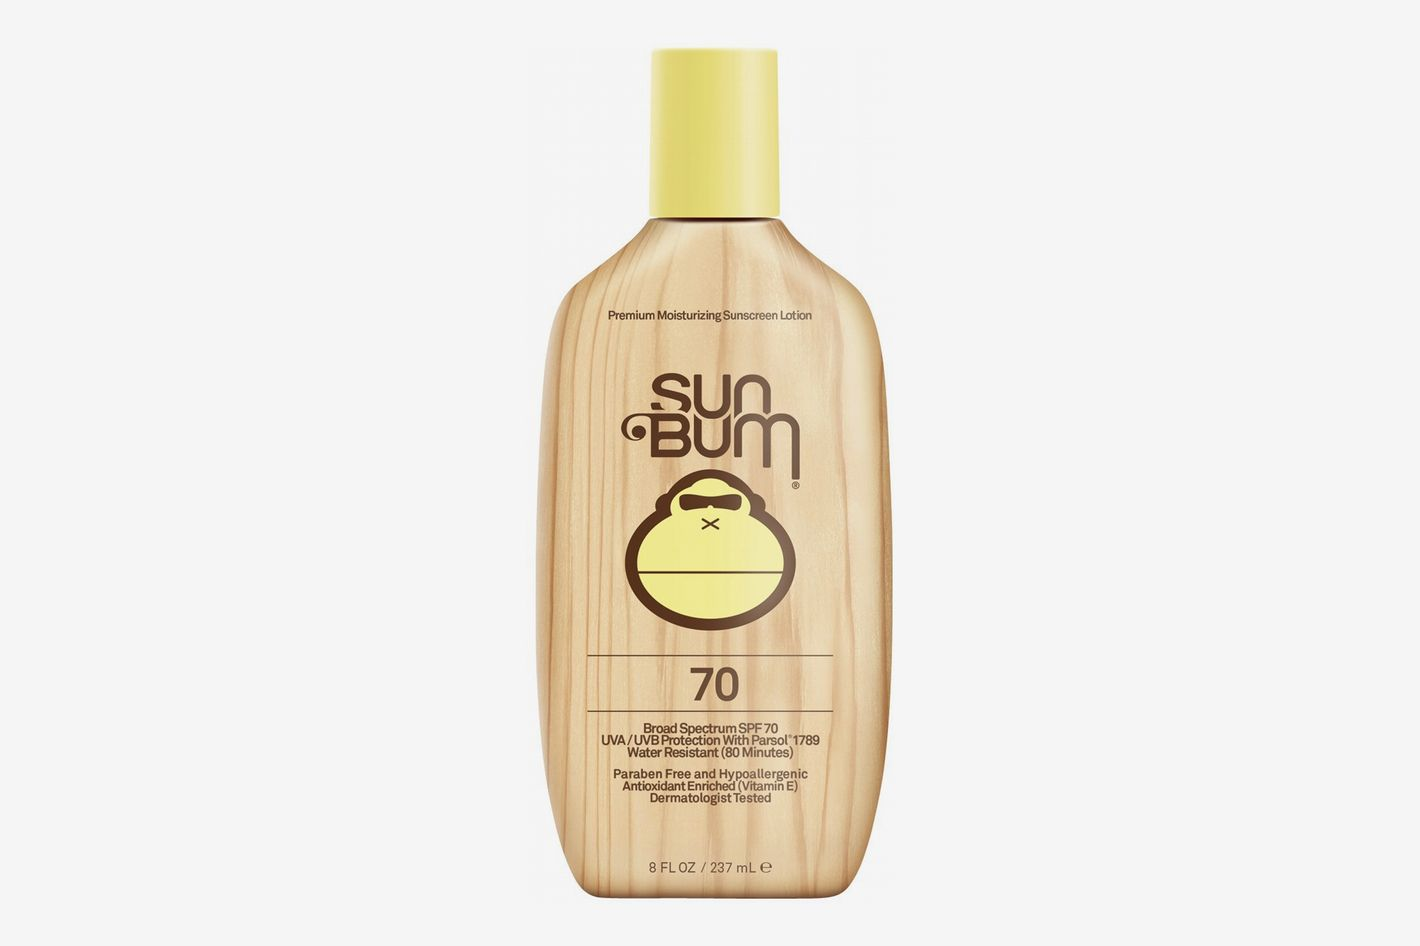 Sun Bum Original Moisturizing Sunscreen SPF 70 Lotion